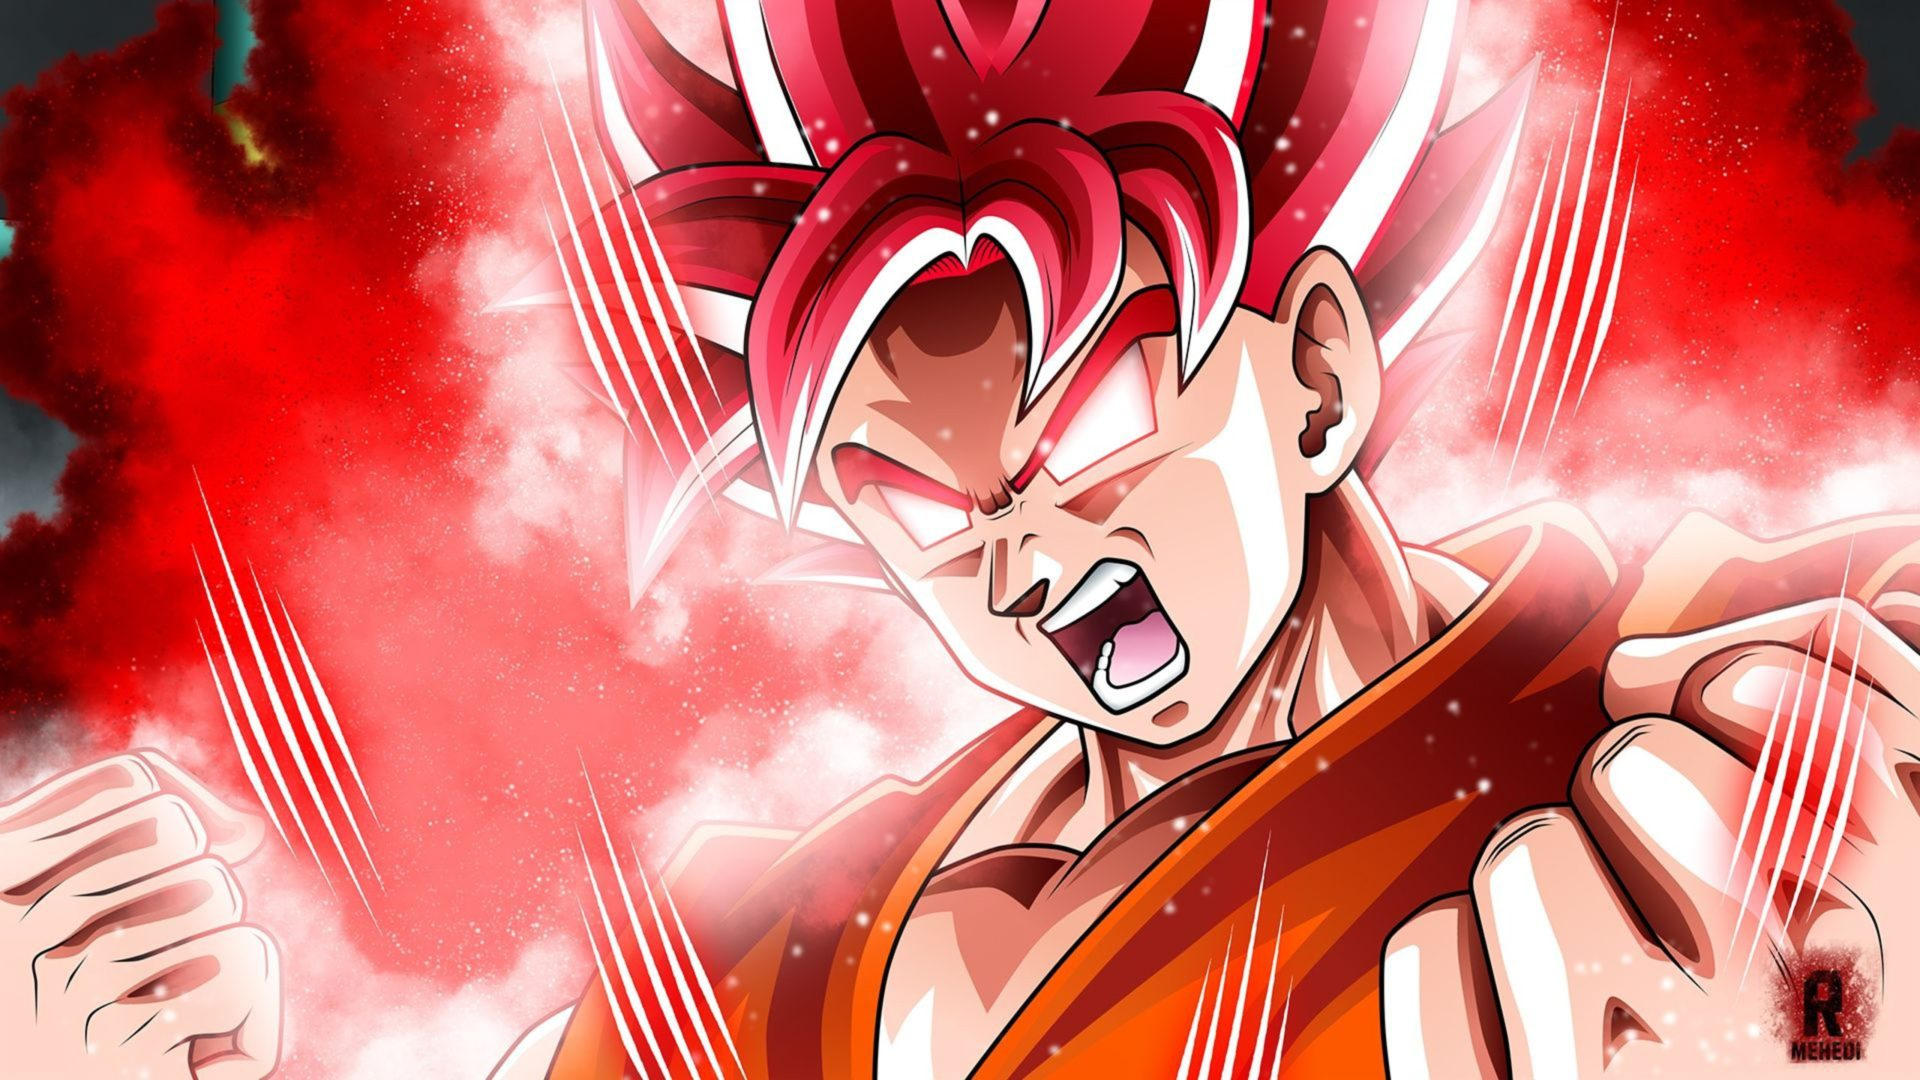 Wallpapers Of Dragon Ball Z Posted By Ryan Thompson